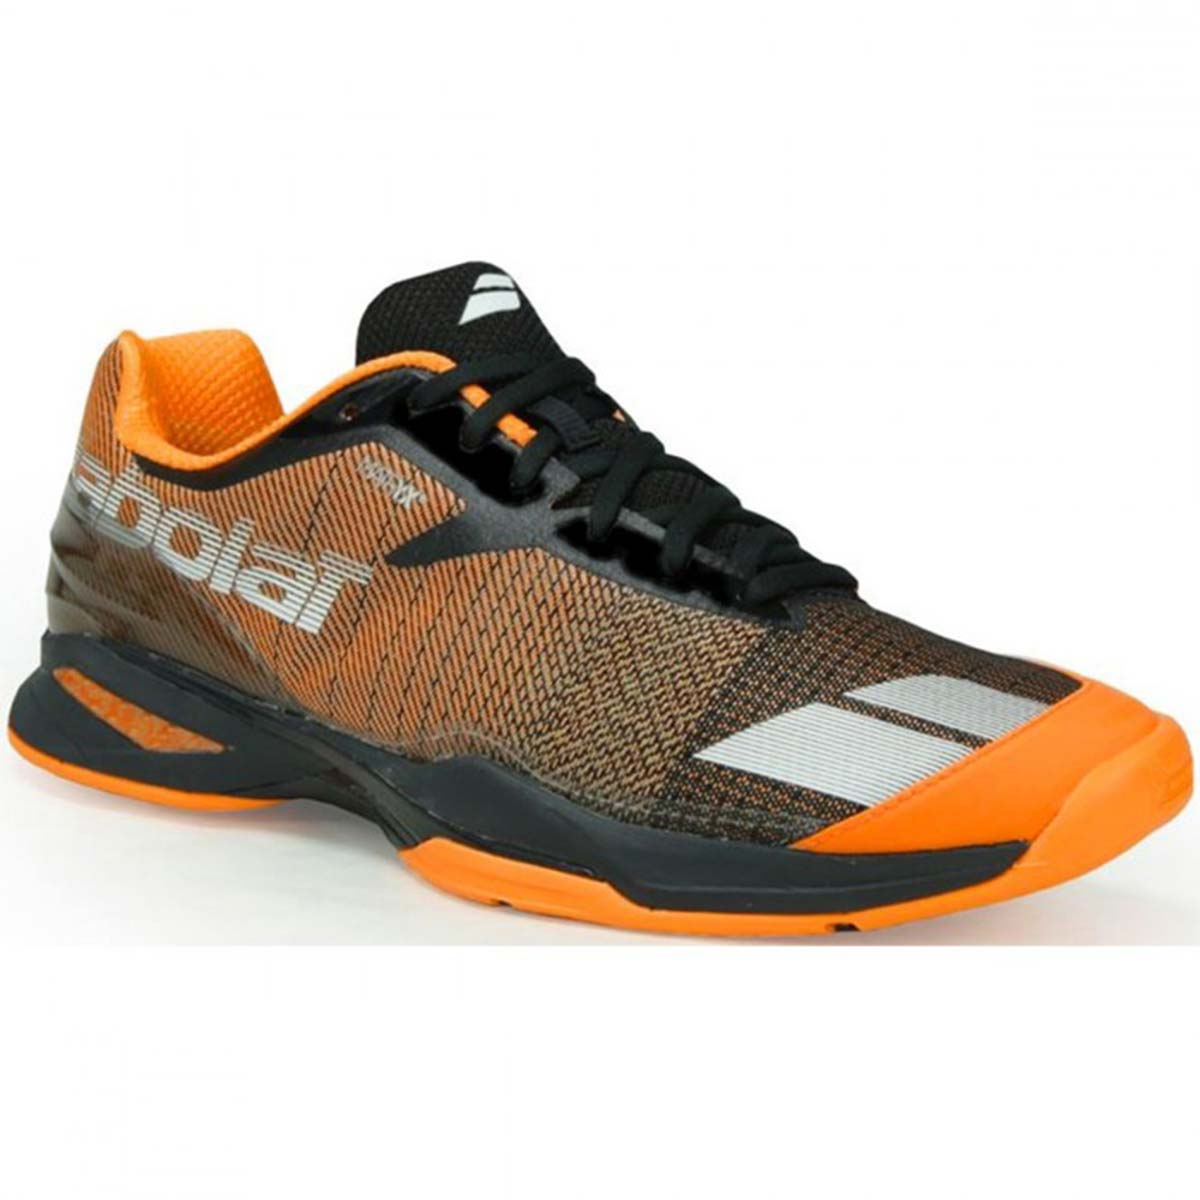 df51319d2f872 Babolat Jet All Court Mens Tennis Shoes (Orange)